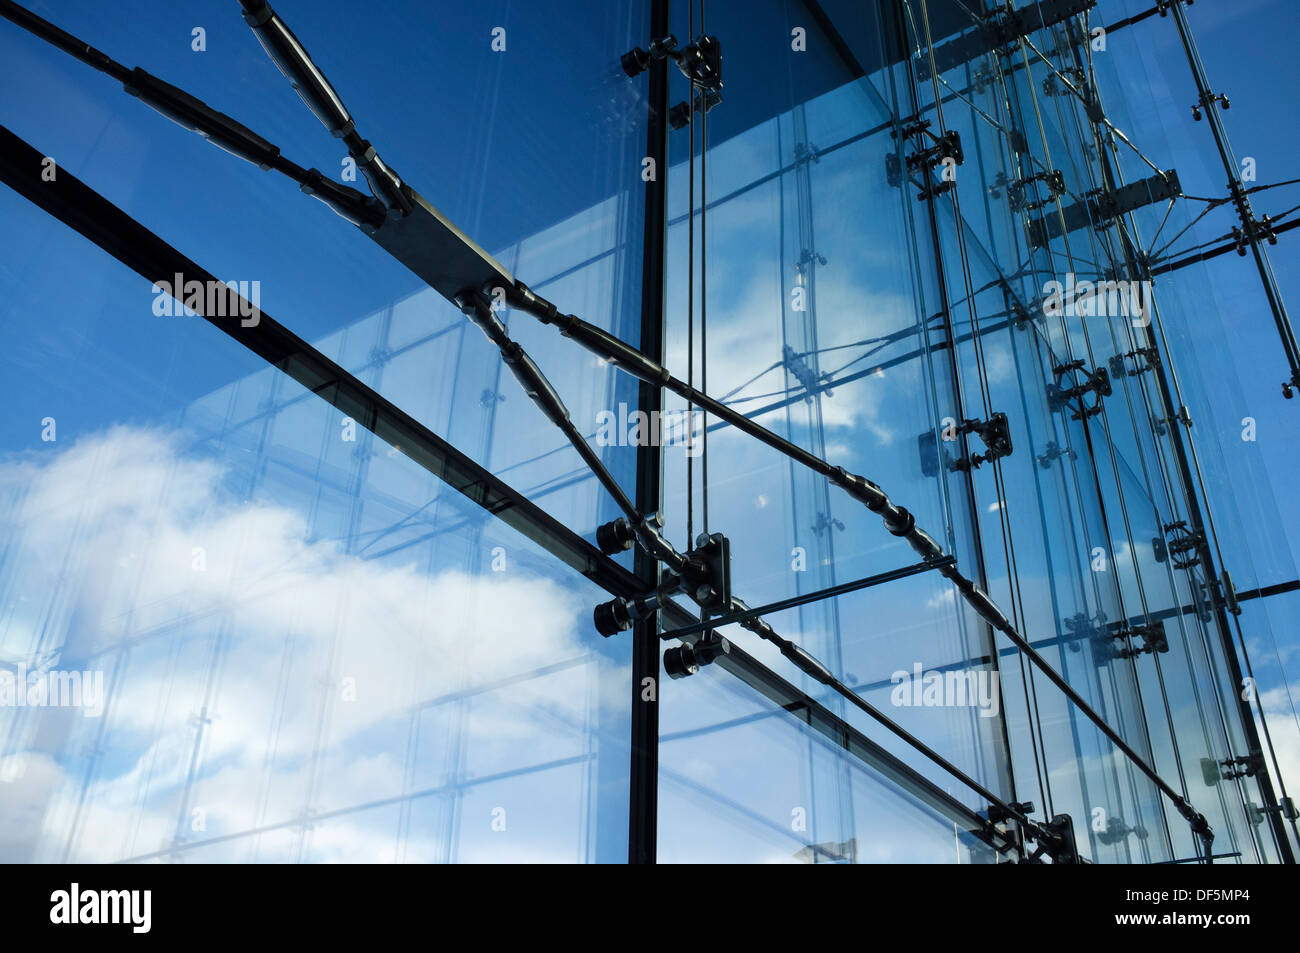 Detail of Modern architecture: Interior Steel and Glass structures. - Stock Image